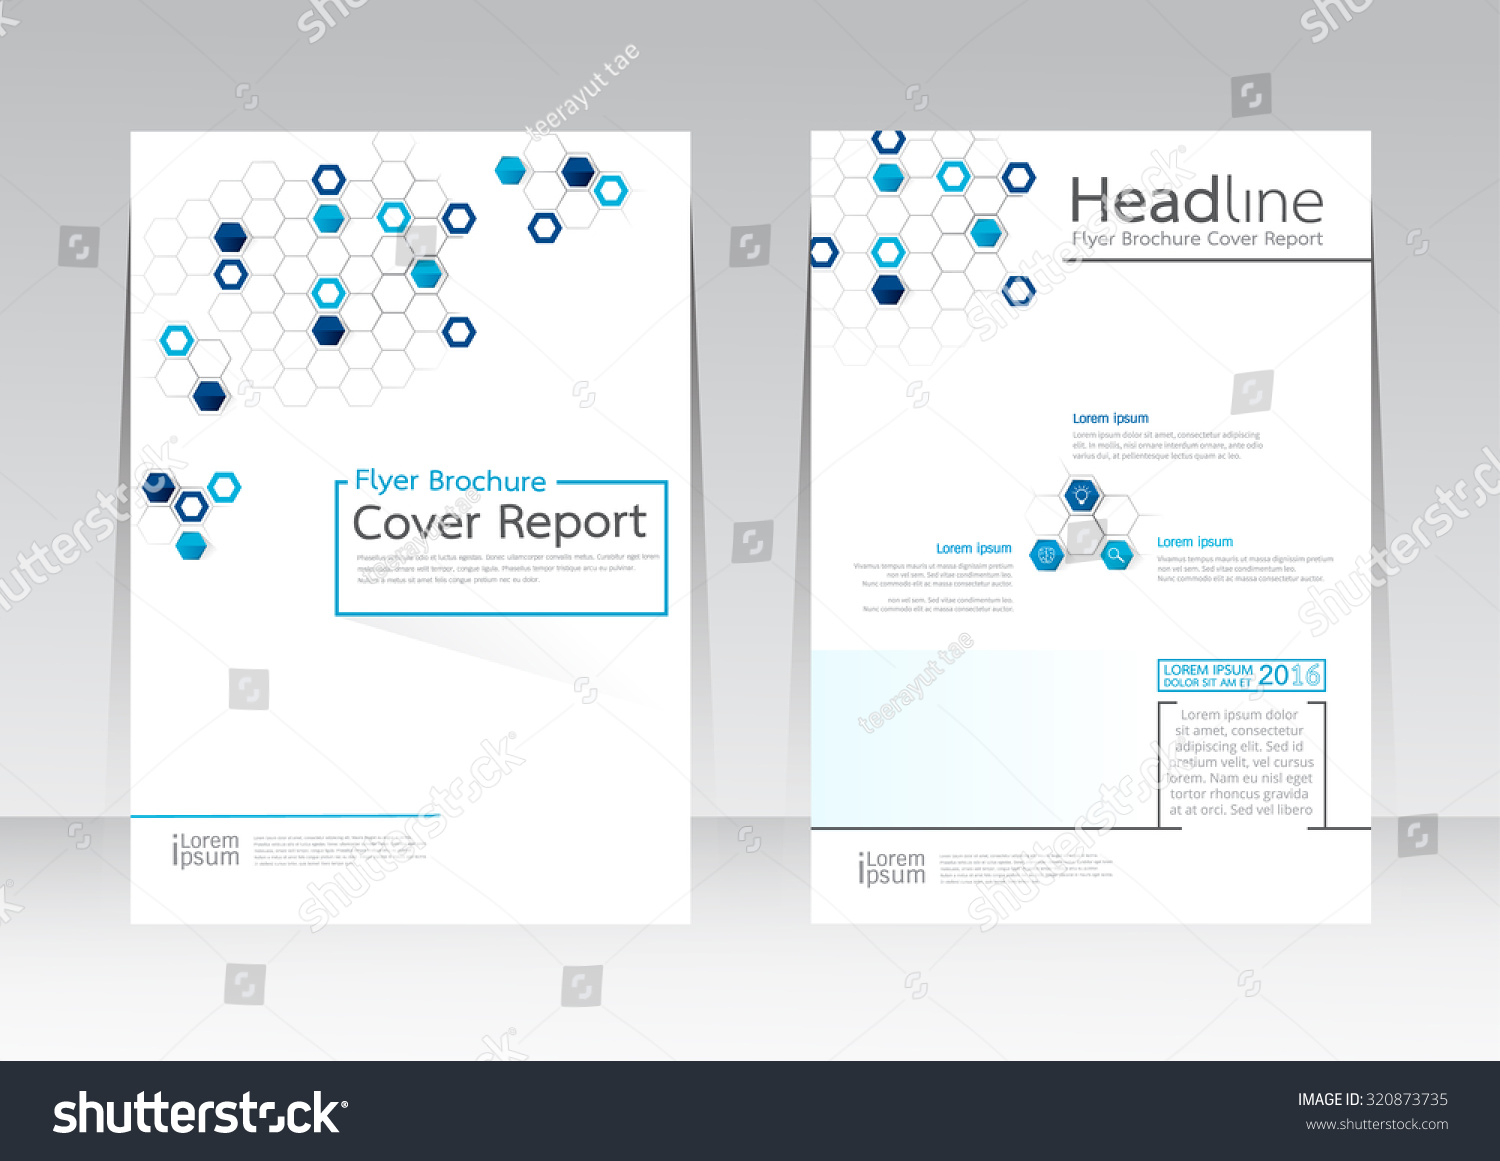 Poster design size - Vector Design For Cover Report Brochure Flyer Poster In A4 Size